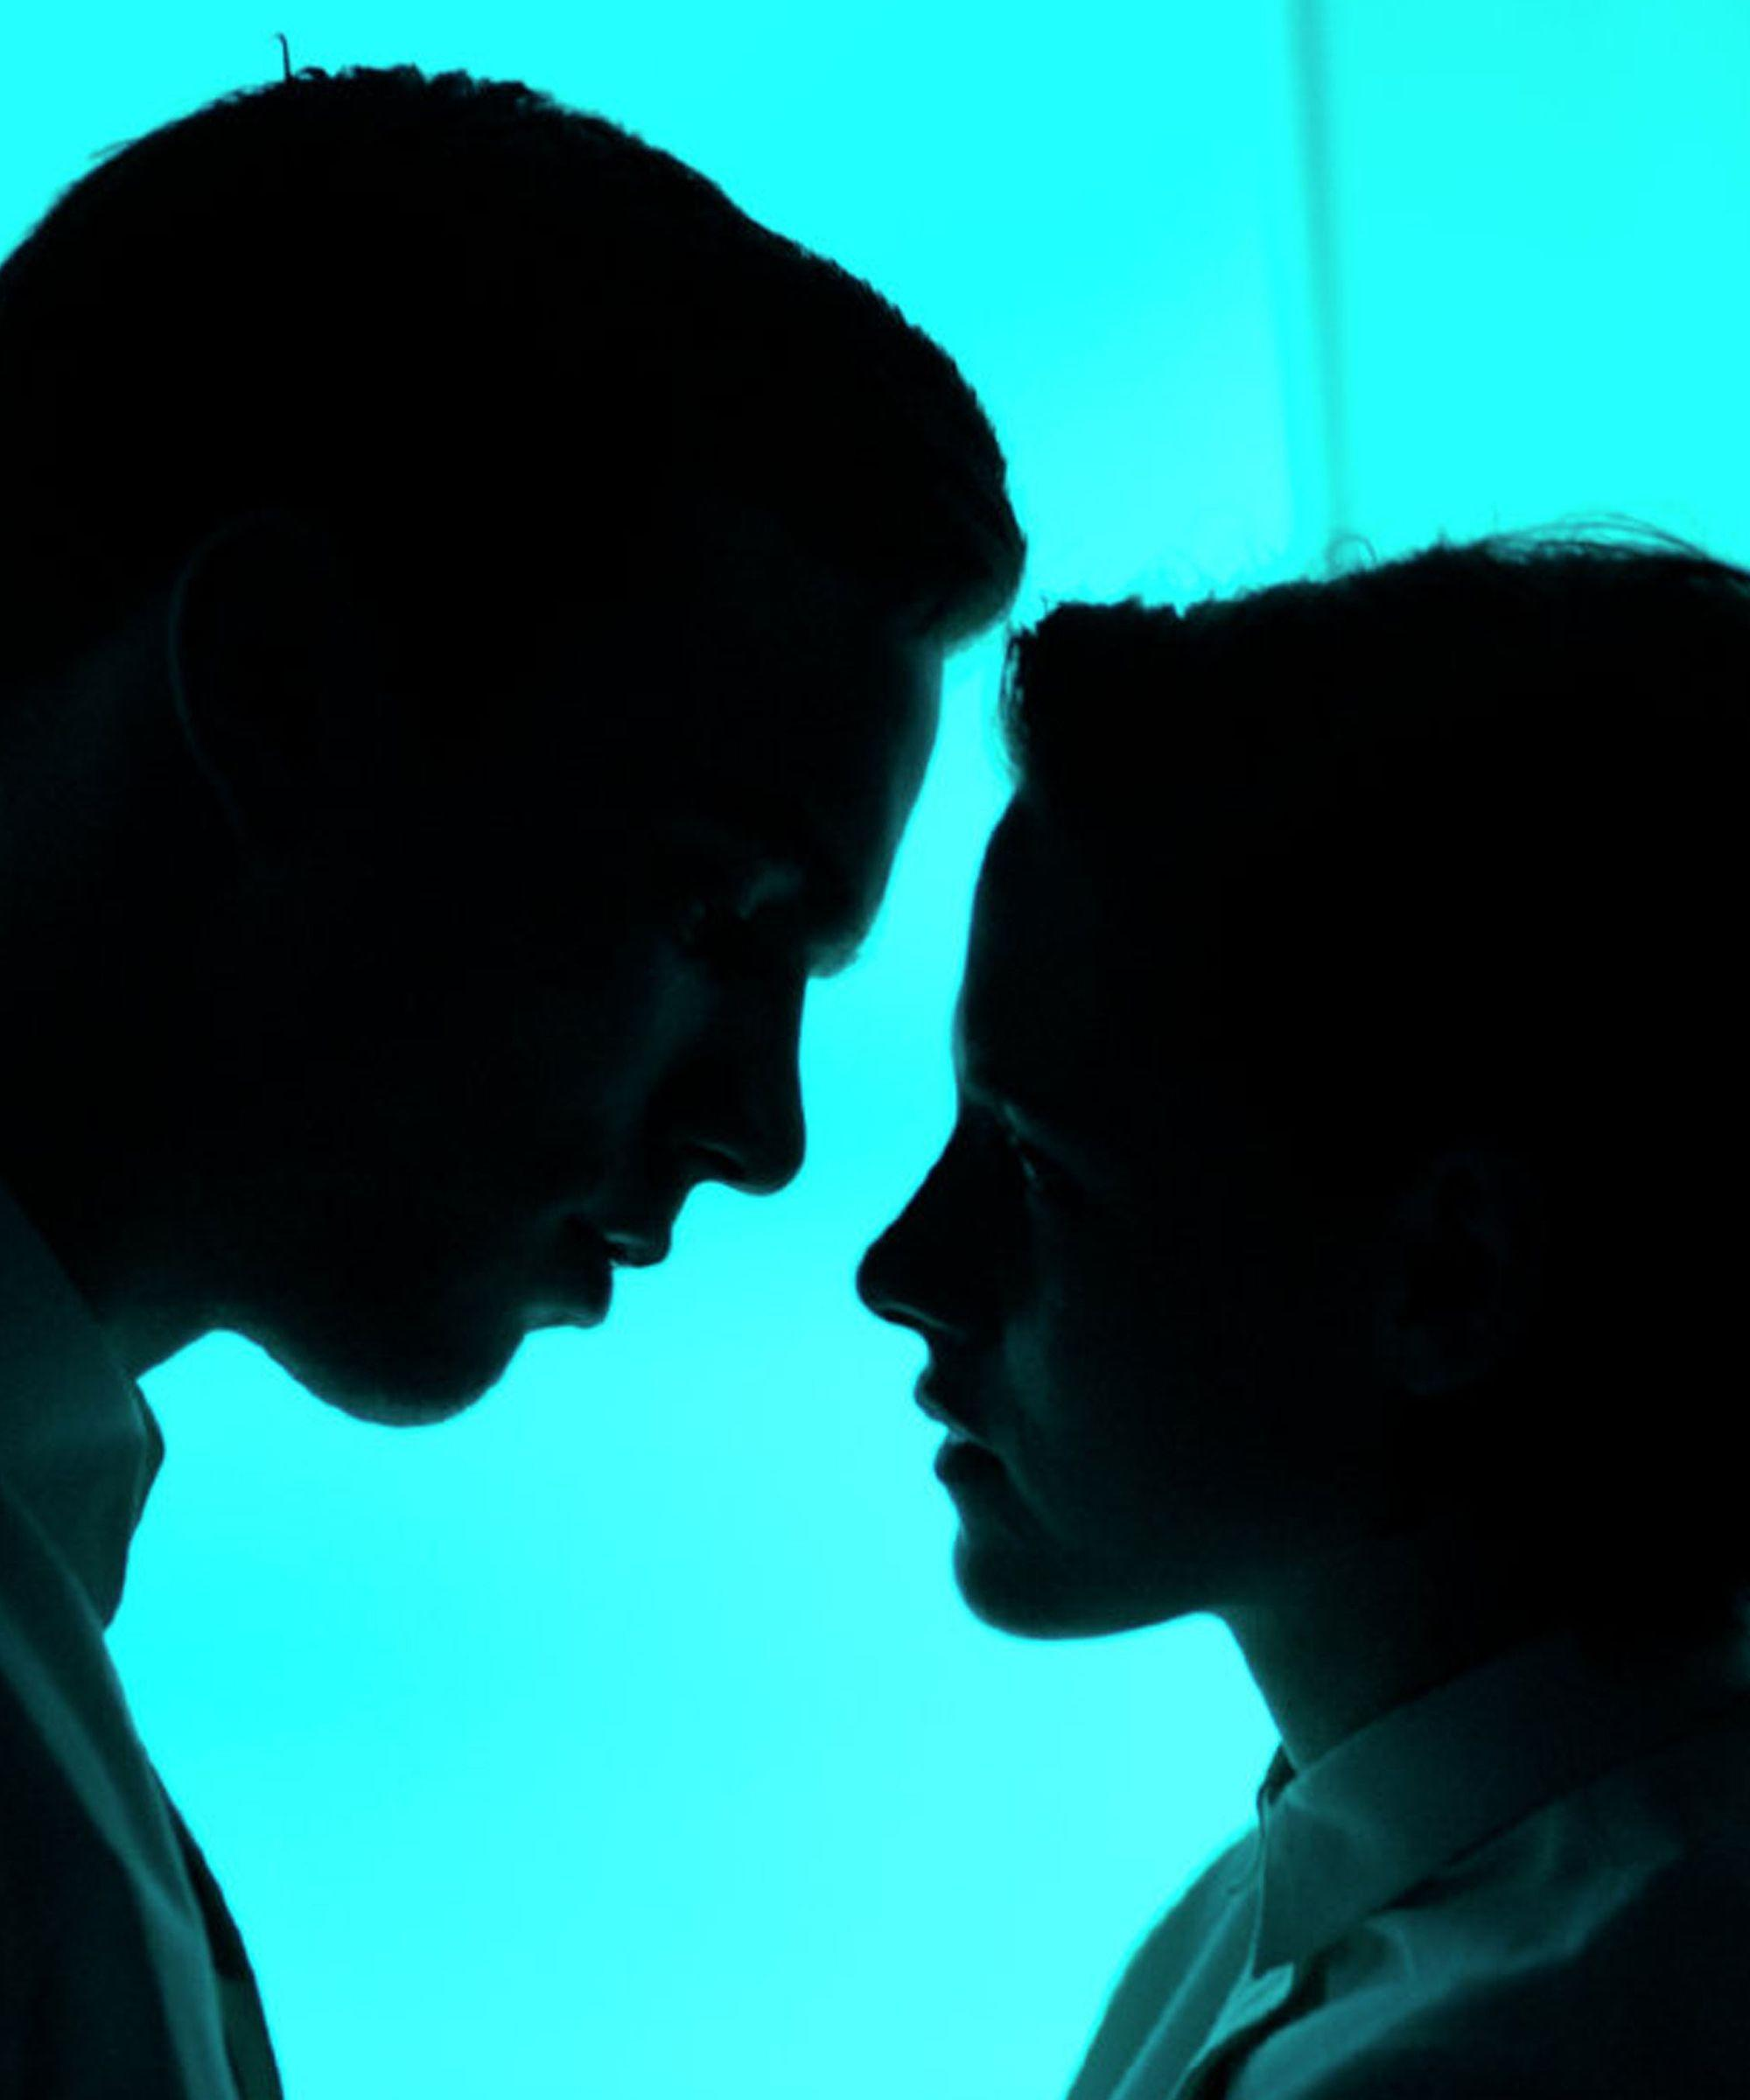 Kristen Stewart & Nicholas Hoult Fall In Love In This Sci-Fi Romance